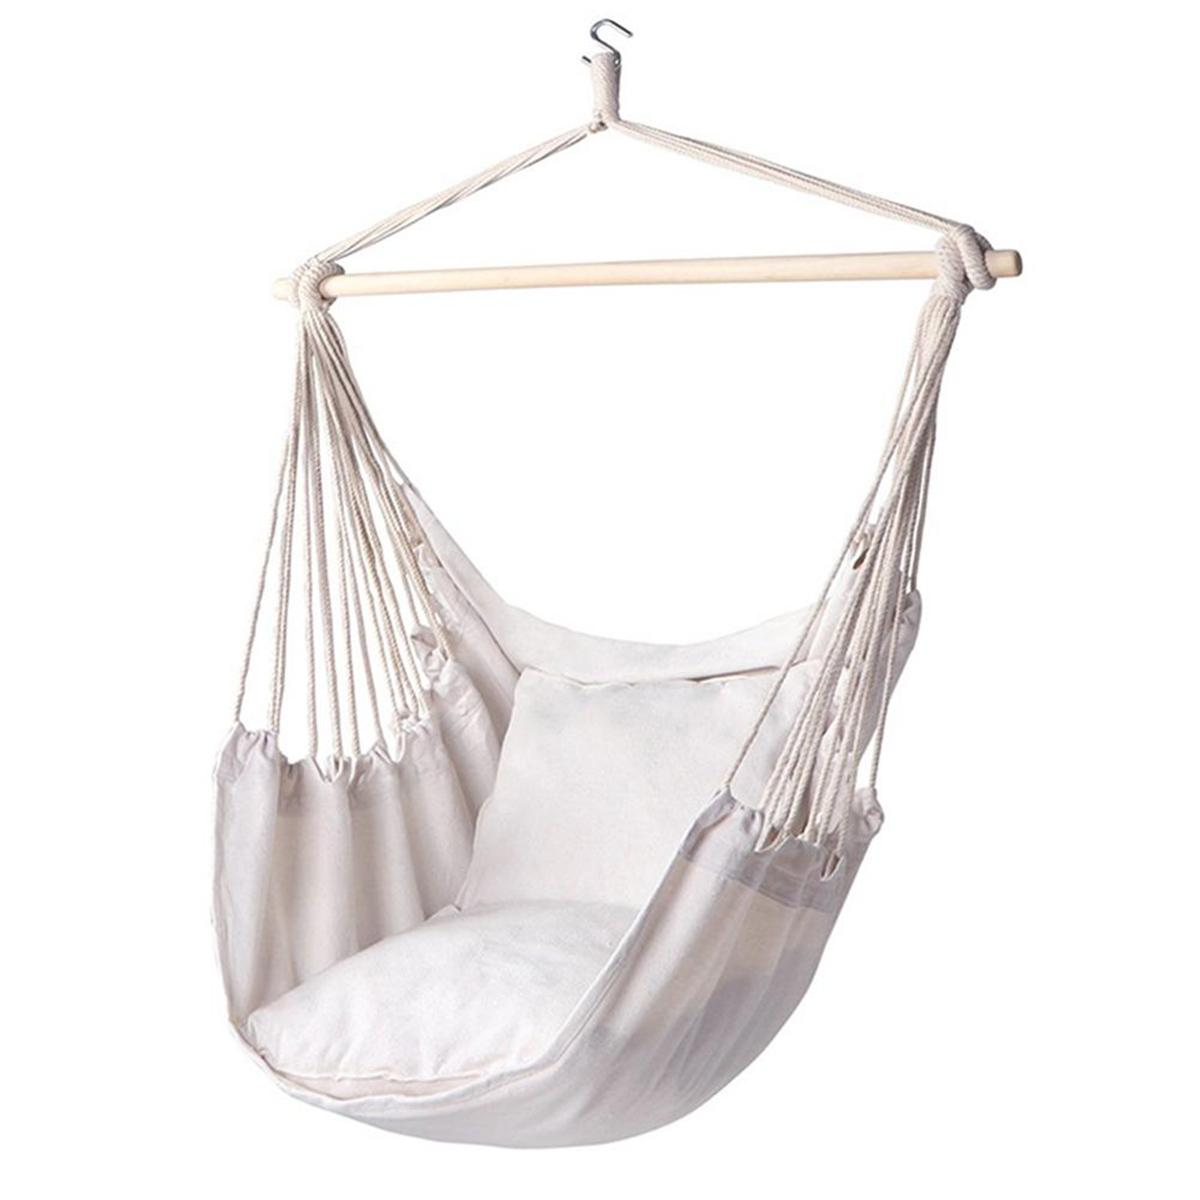 160 kg Hammock Portable Hanging Chair Swing Chair Seat with Pillow for Garden Indoor Outdoor Single Safety Chair For Child Adult